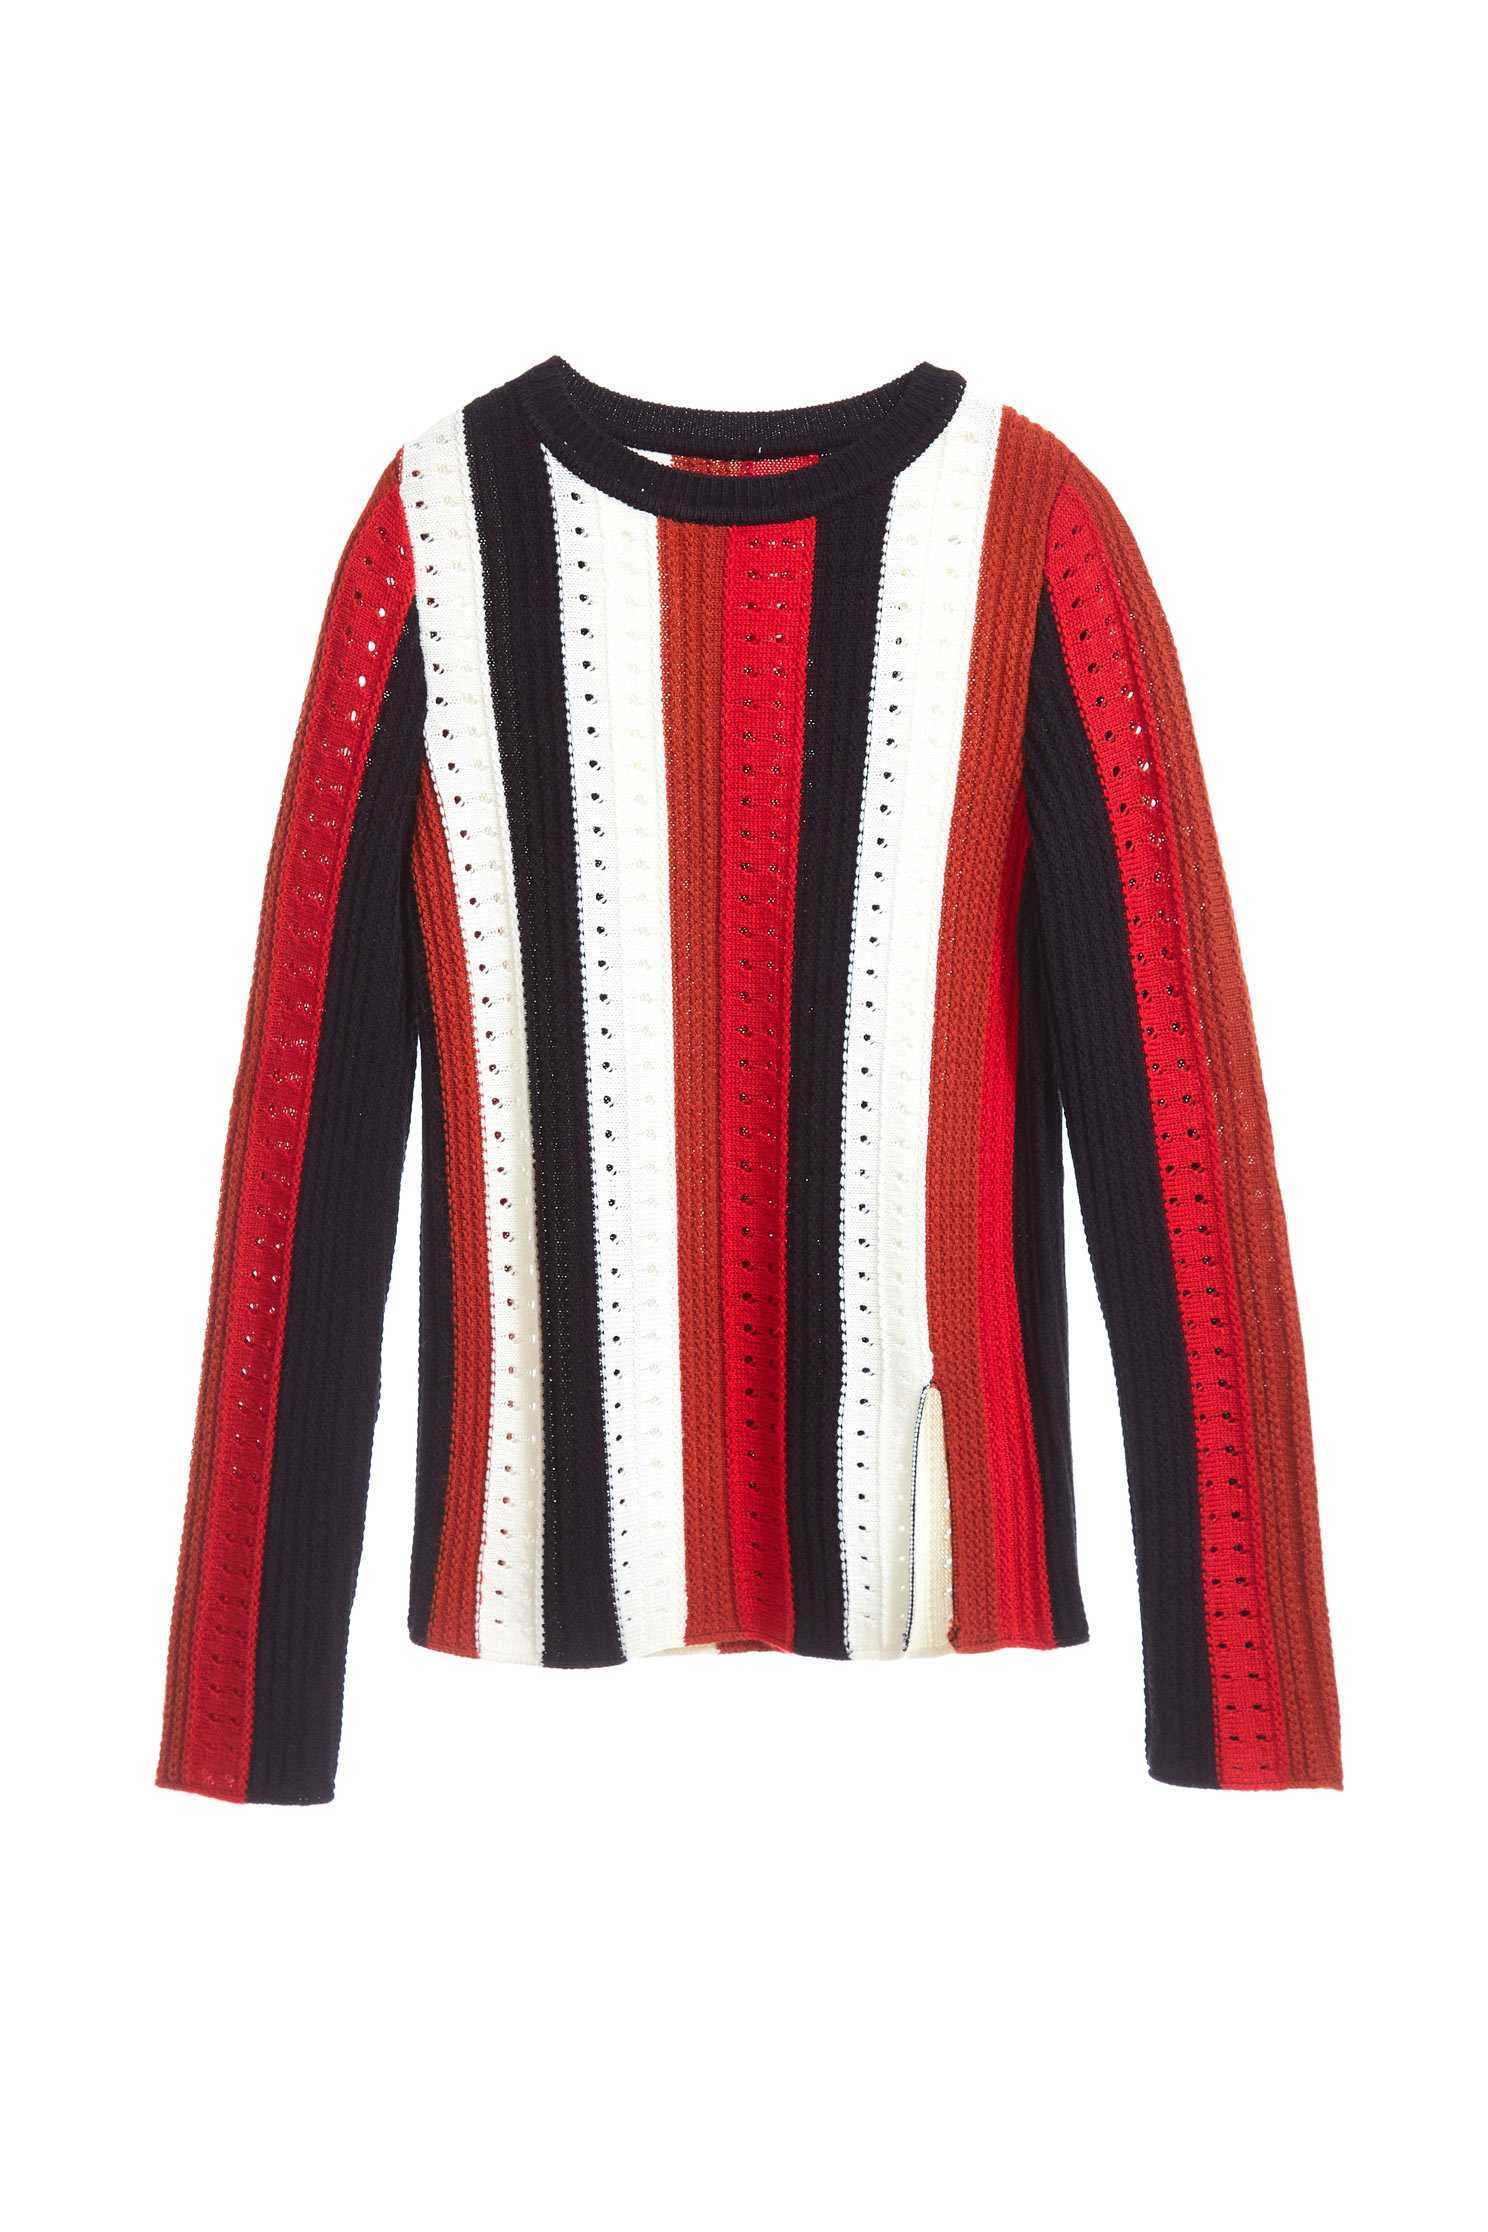 Color matching classic fashion top,top,knitting,knittedtop,knittedtop,longsleevetop